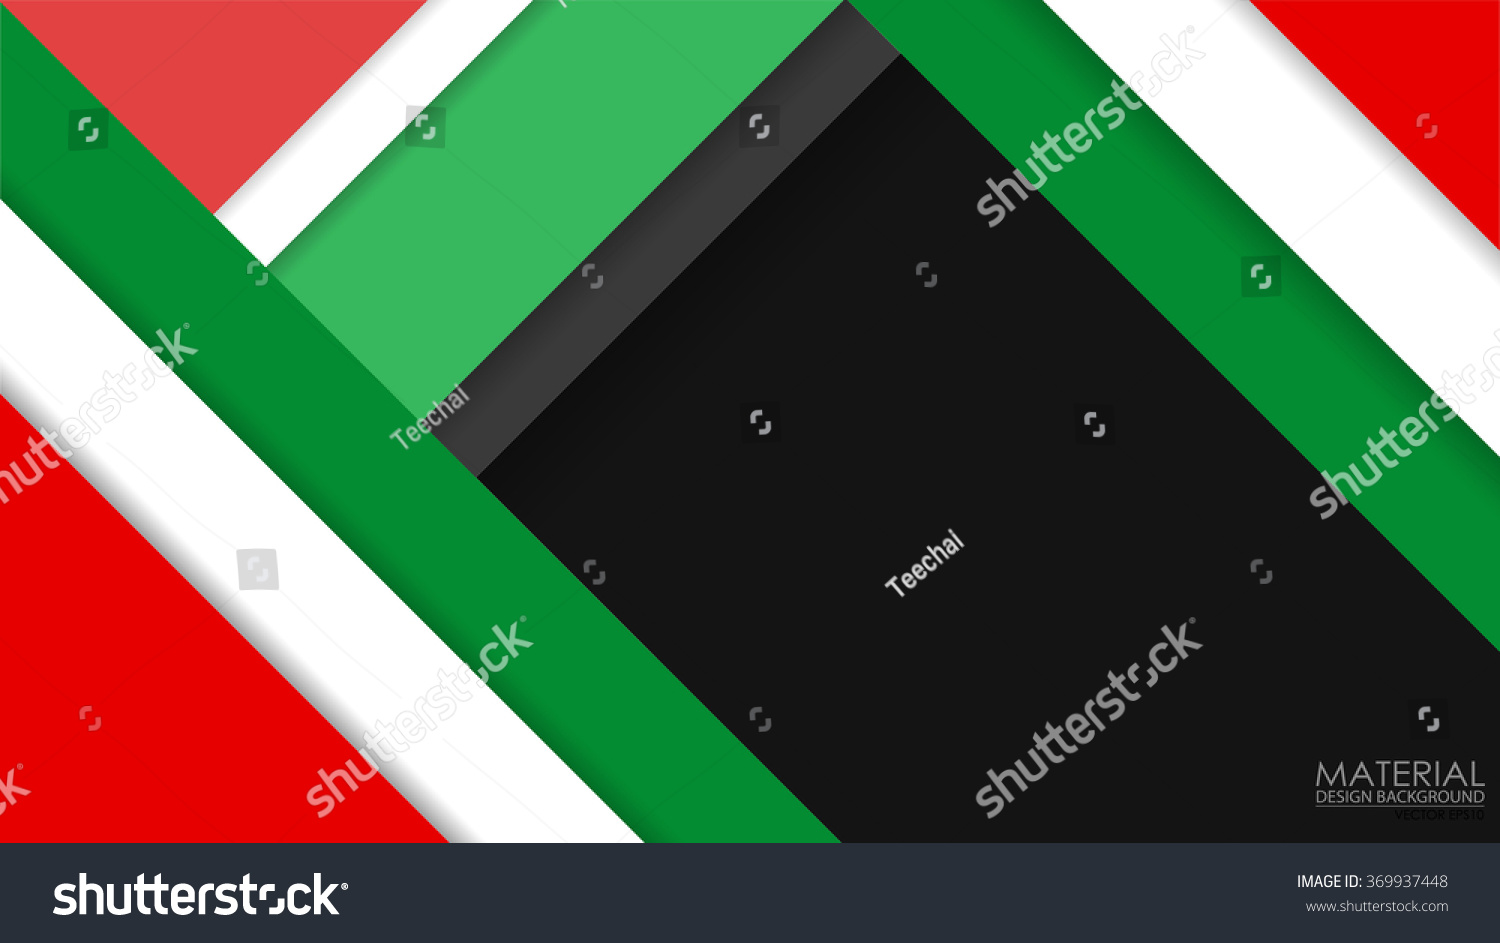 abstract background digital design material design stock